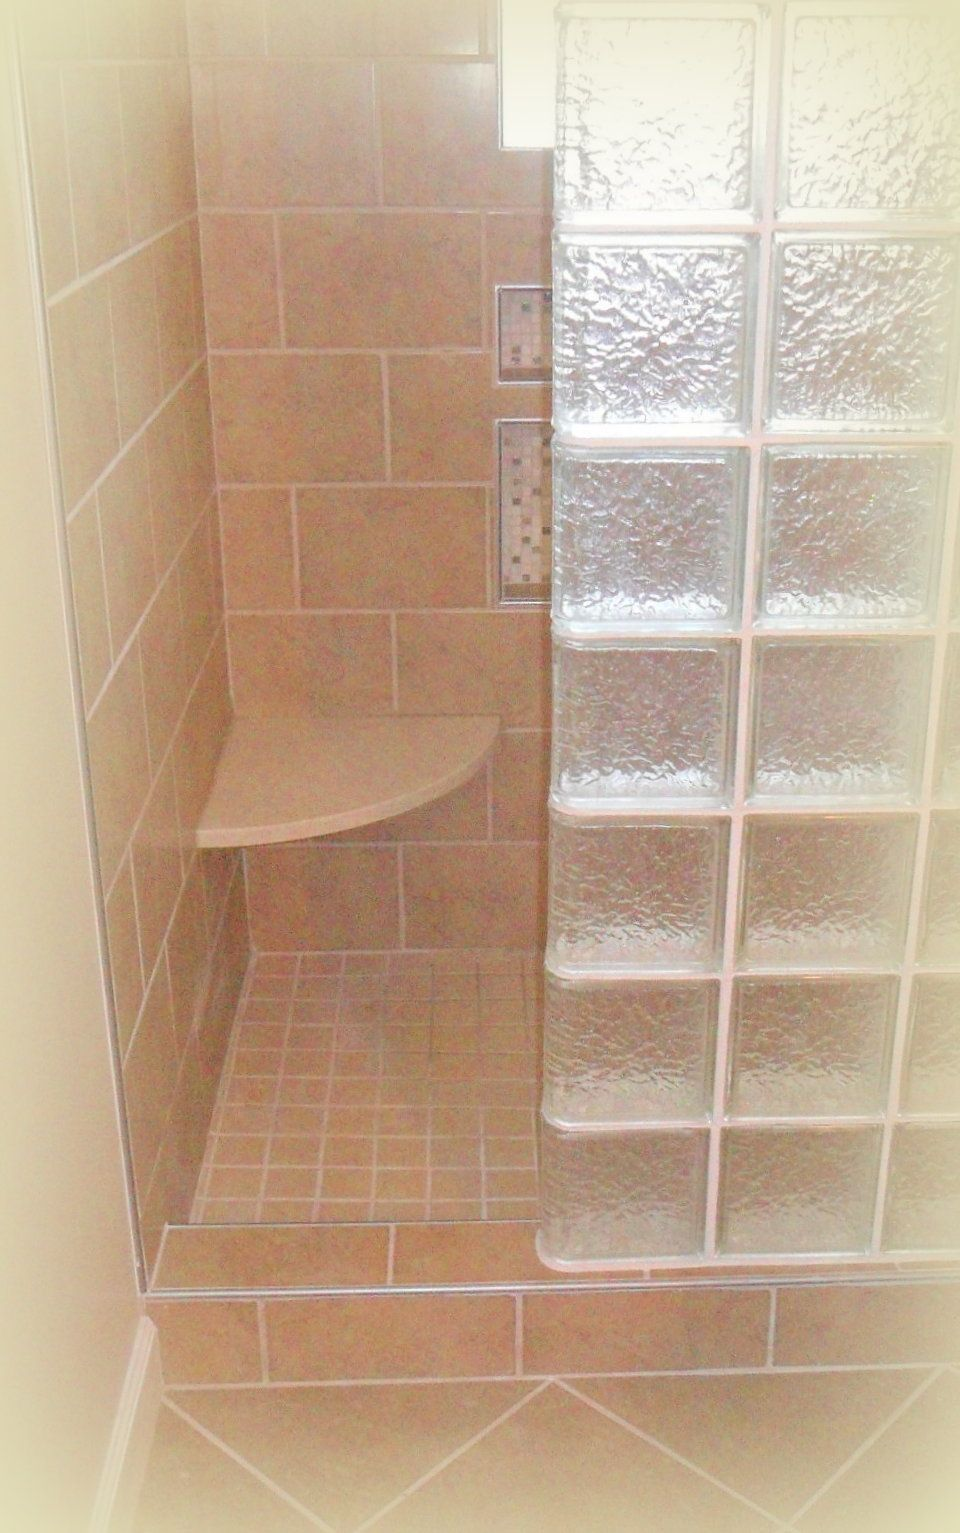 Tiled Shower With Marble Corner Seat Schluter Trim Glass Block Wall And Tile By Shaw Glass Blocks Wall Glass Block Shower Bathroom Wall